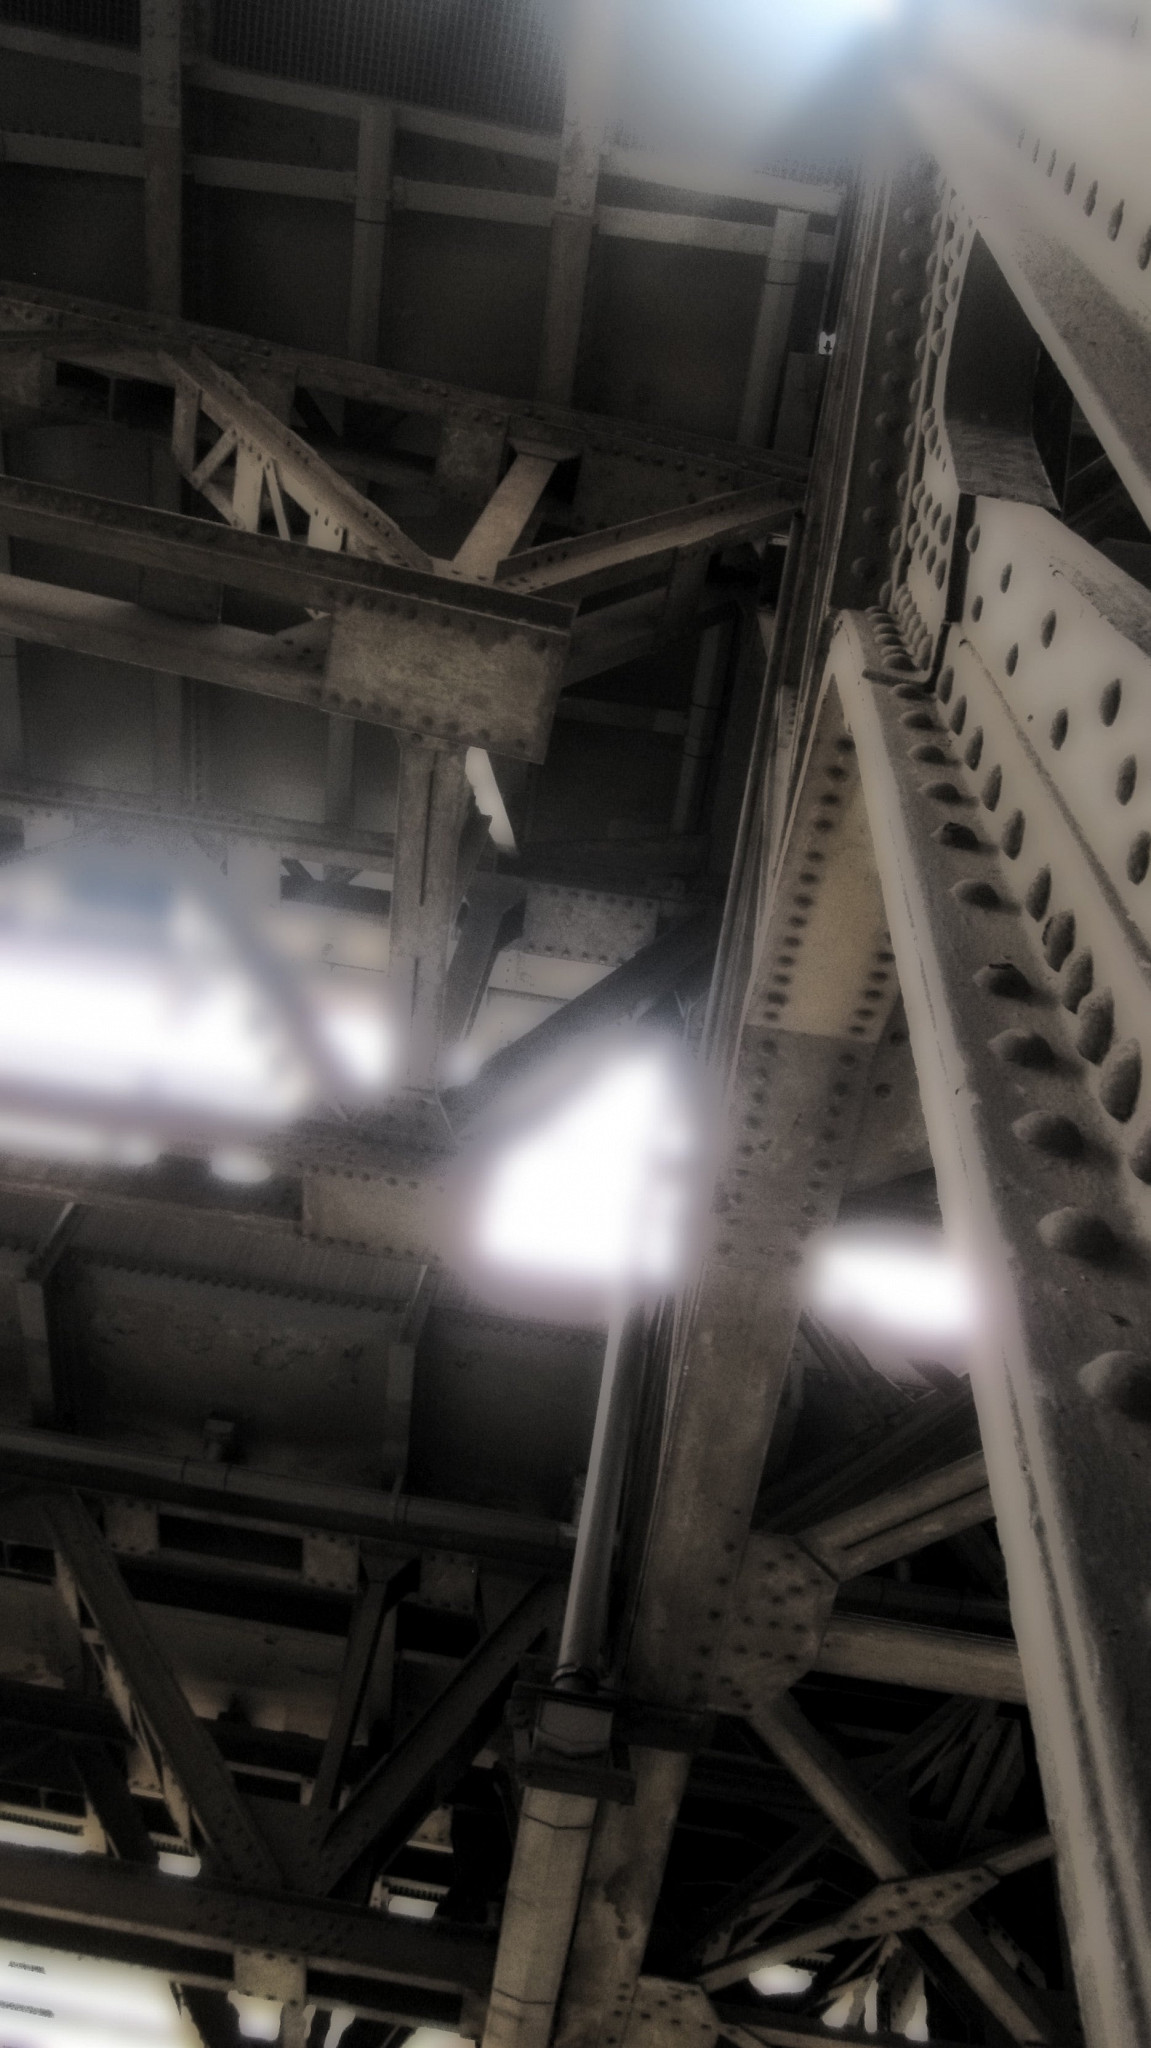 Under the tracks